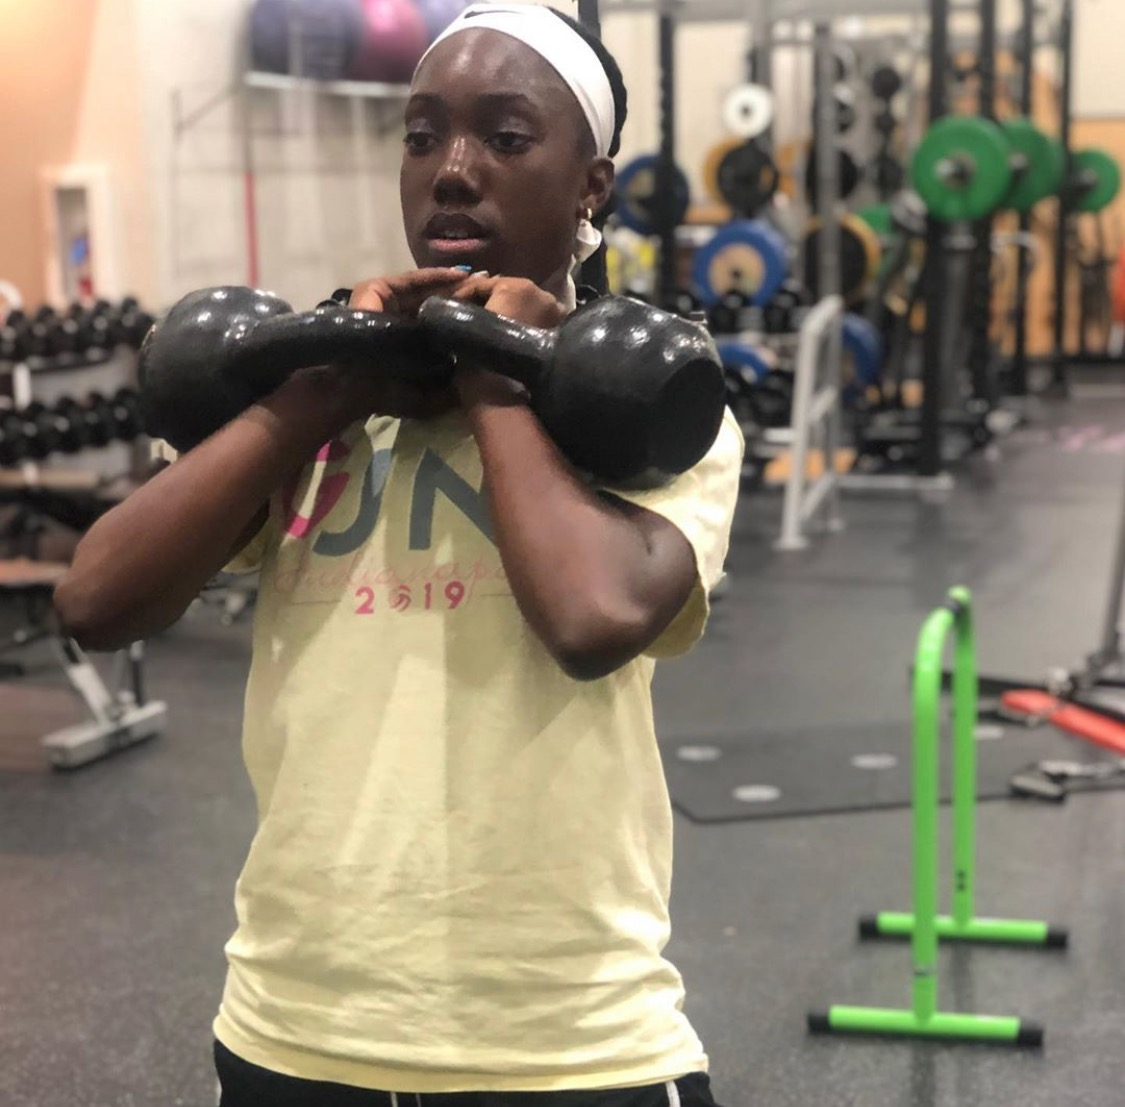 Sports Performance Drop-In